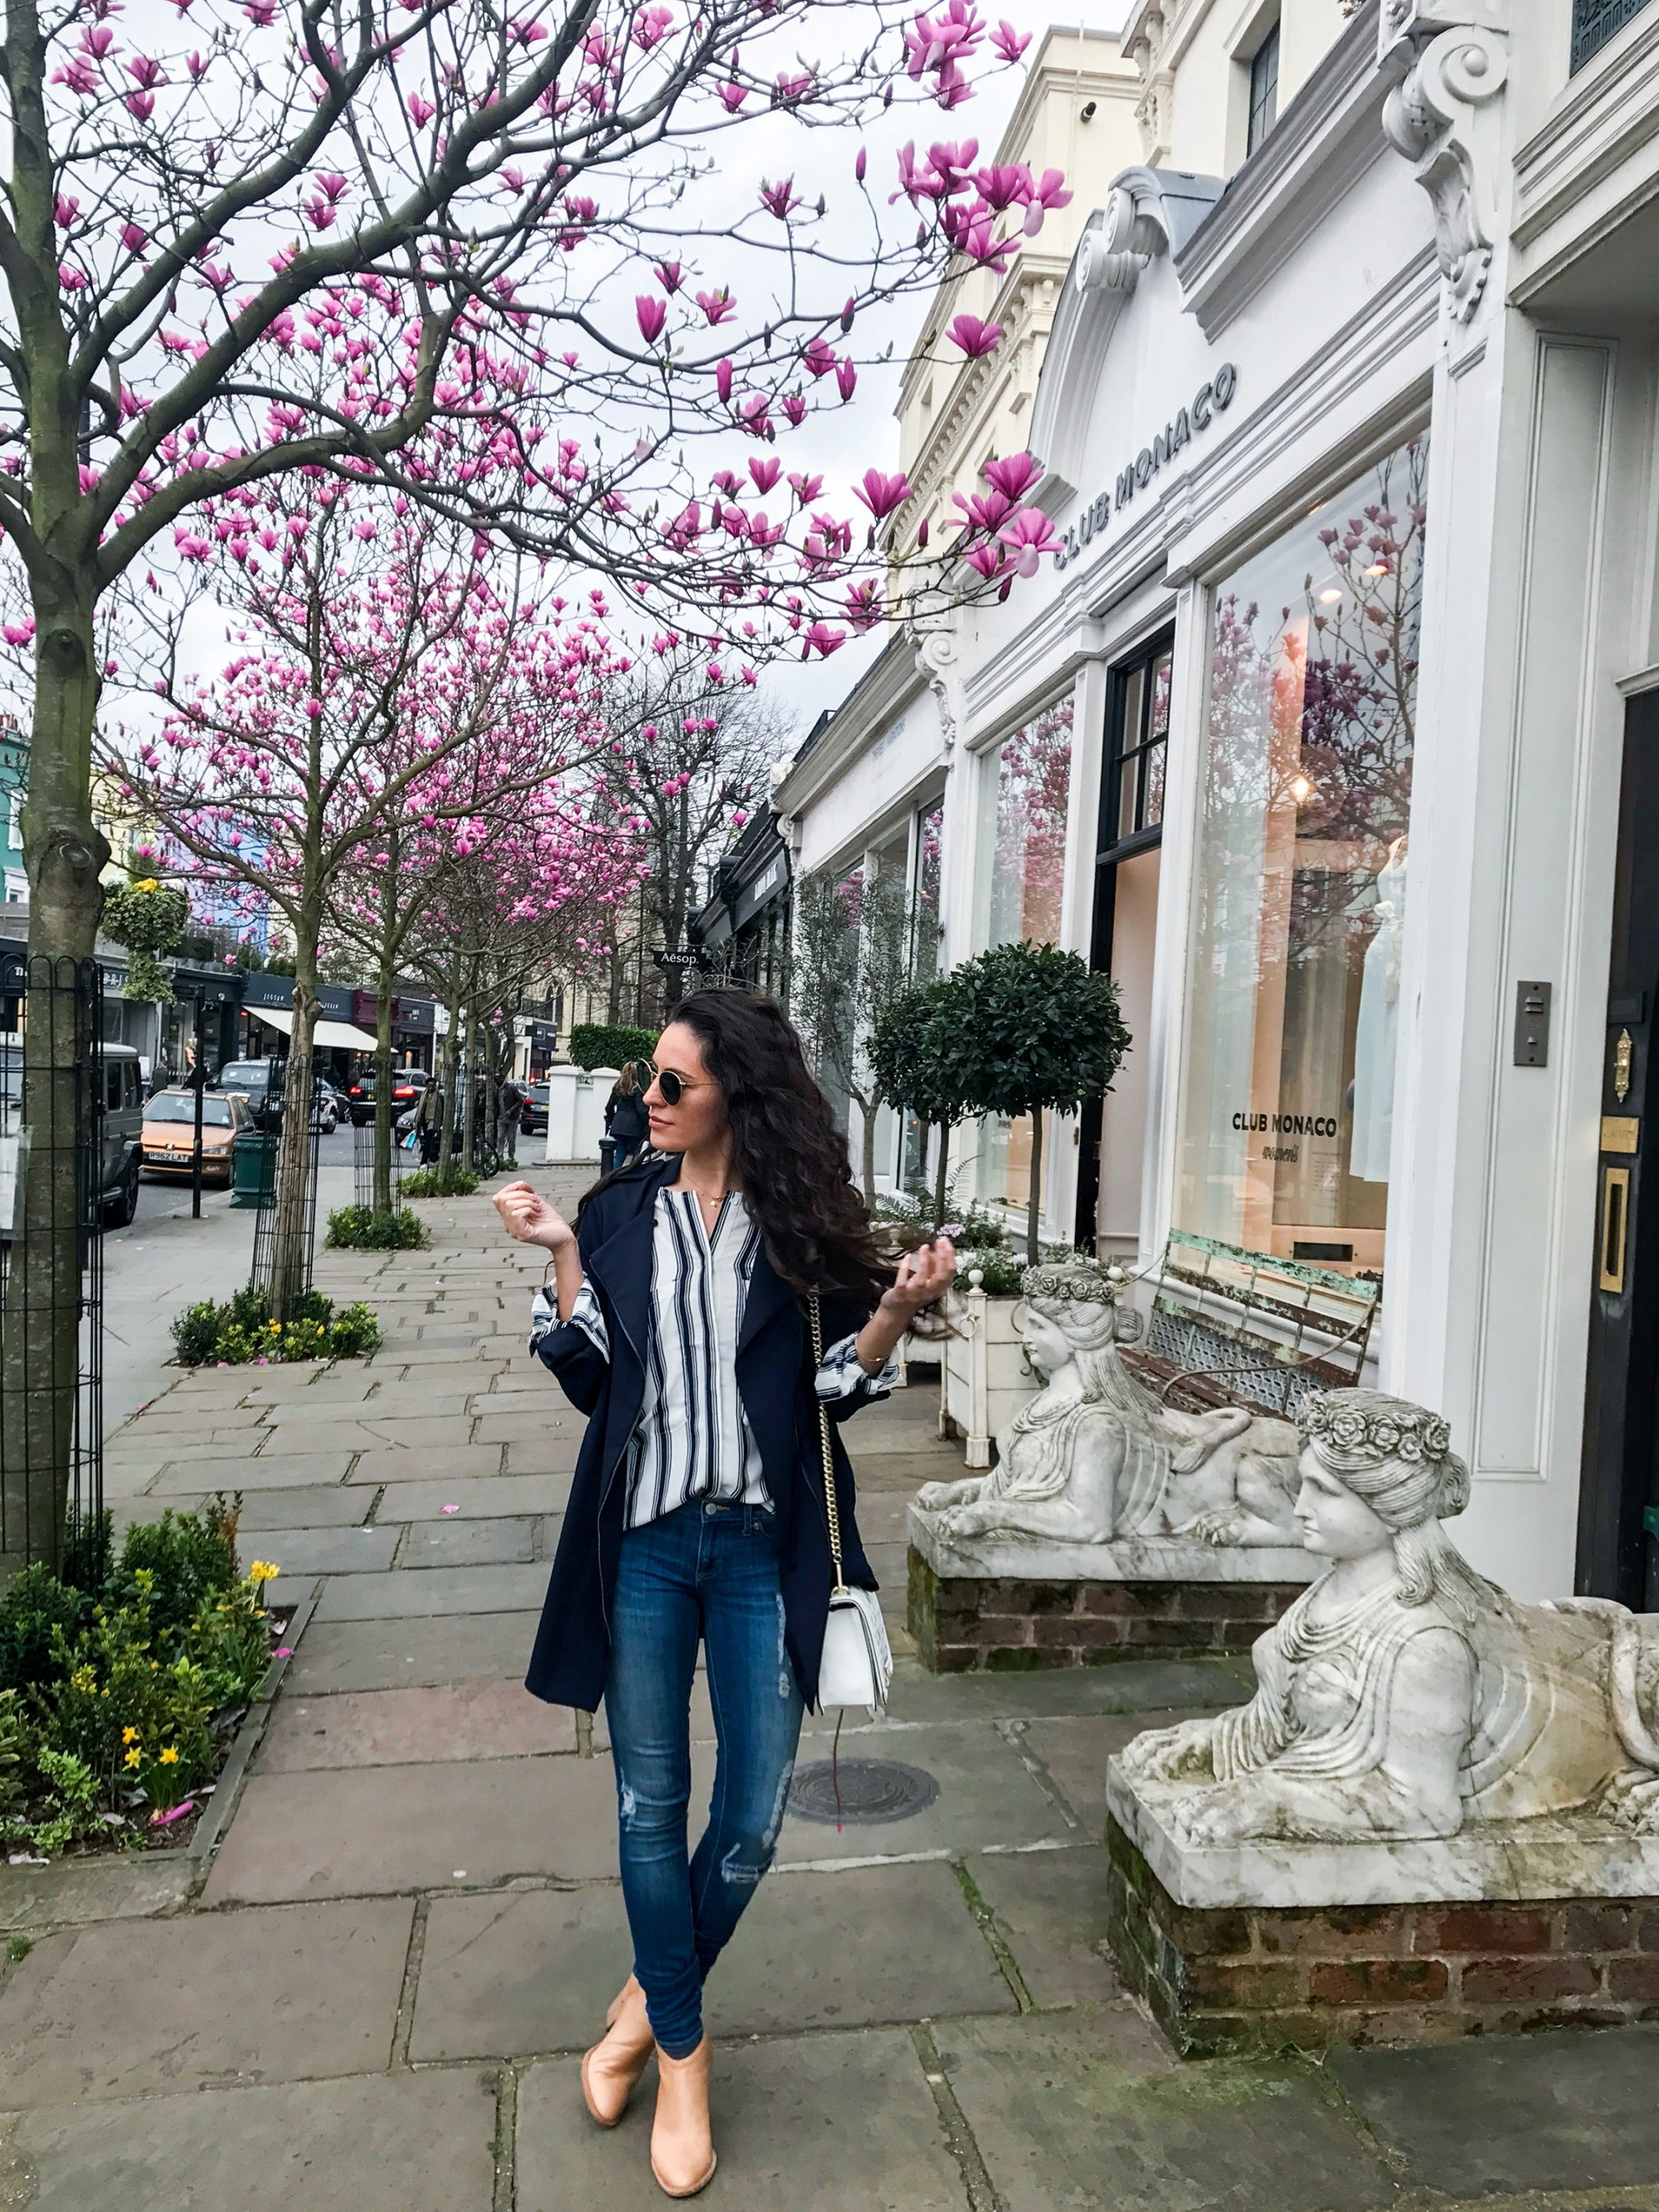 shopping in notting hill, the dayrooms, shopping in London, Notting hill london